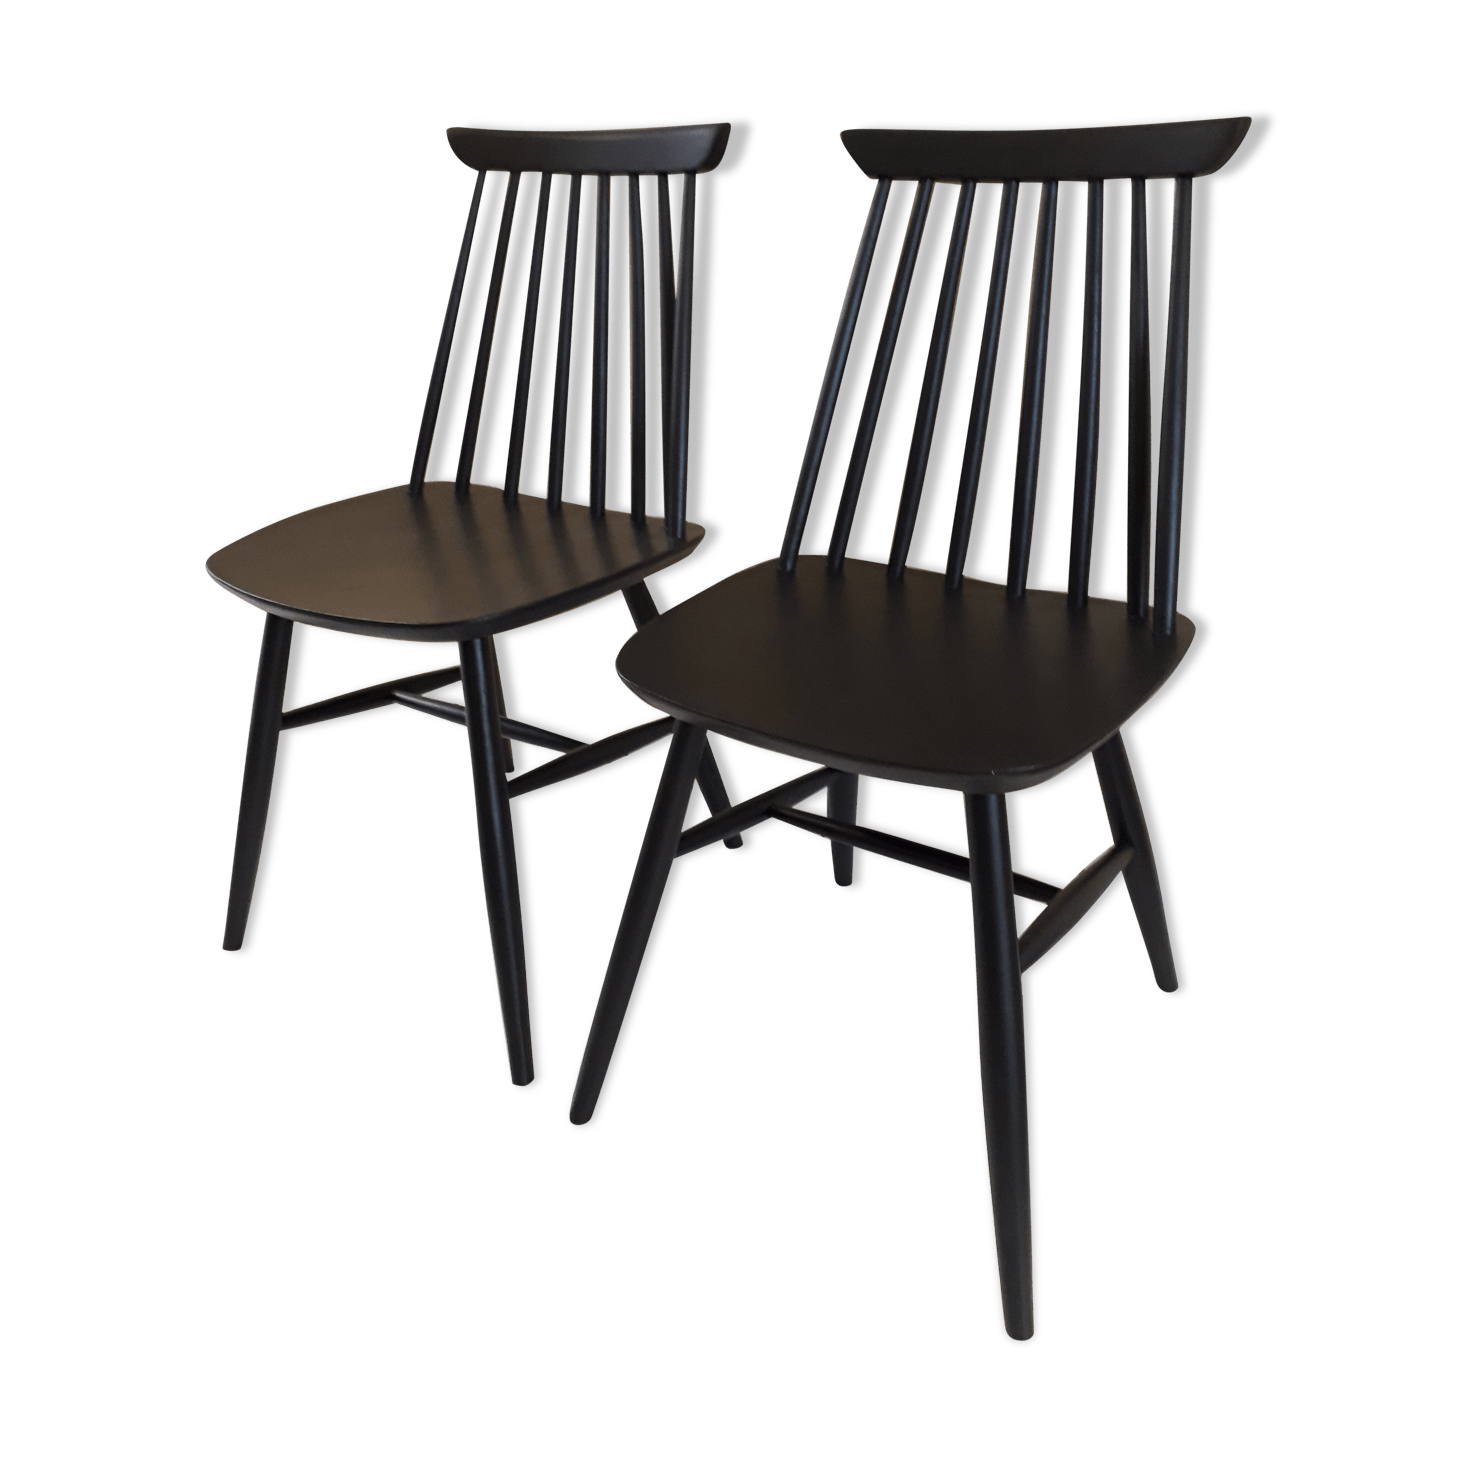 Chaises Scandinaves Noires Chaises Scandinaves Noires Simple Previous With Chaises